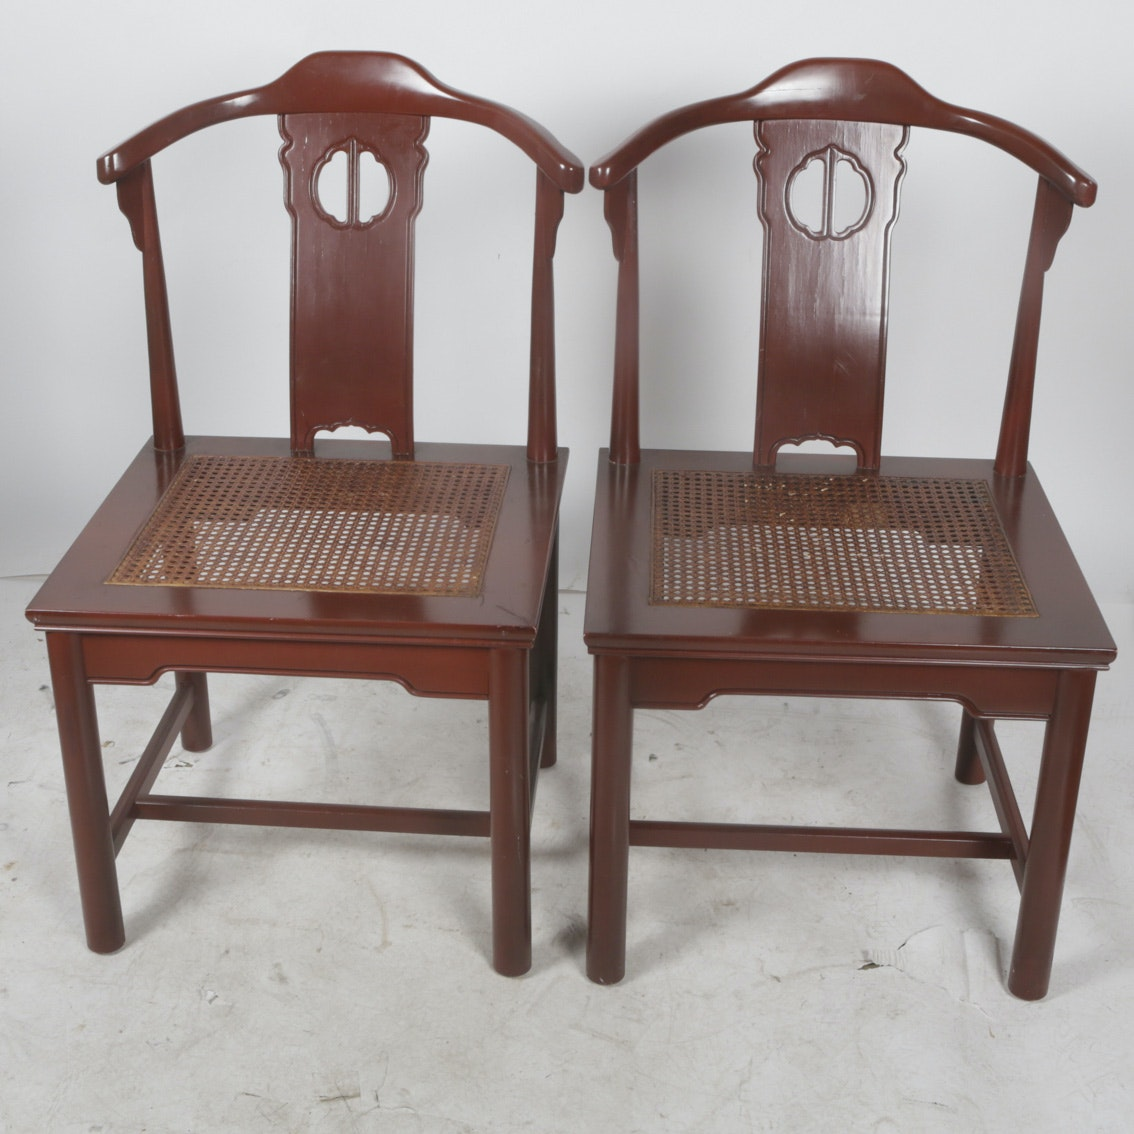 Chinese Style Yoke Back and Cane Chairs